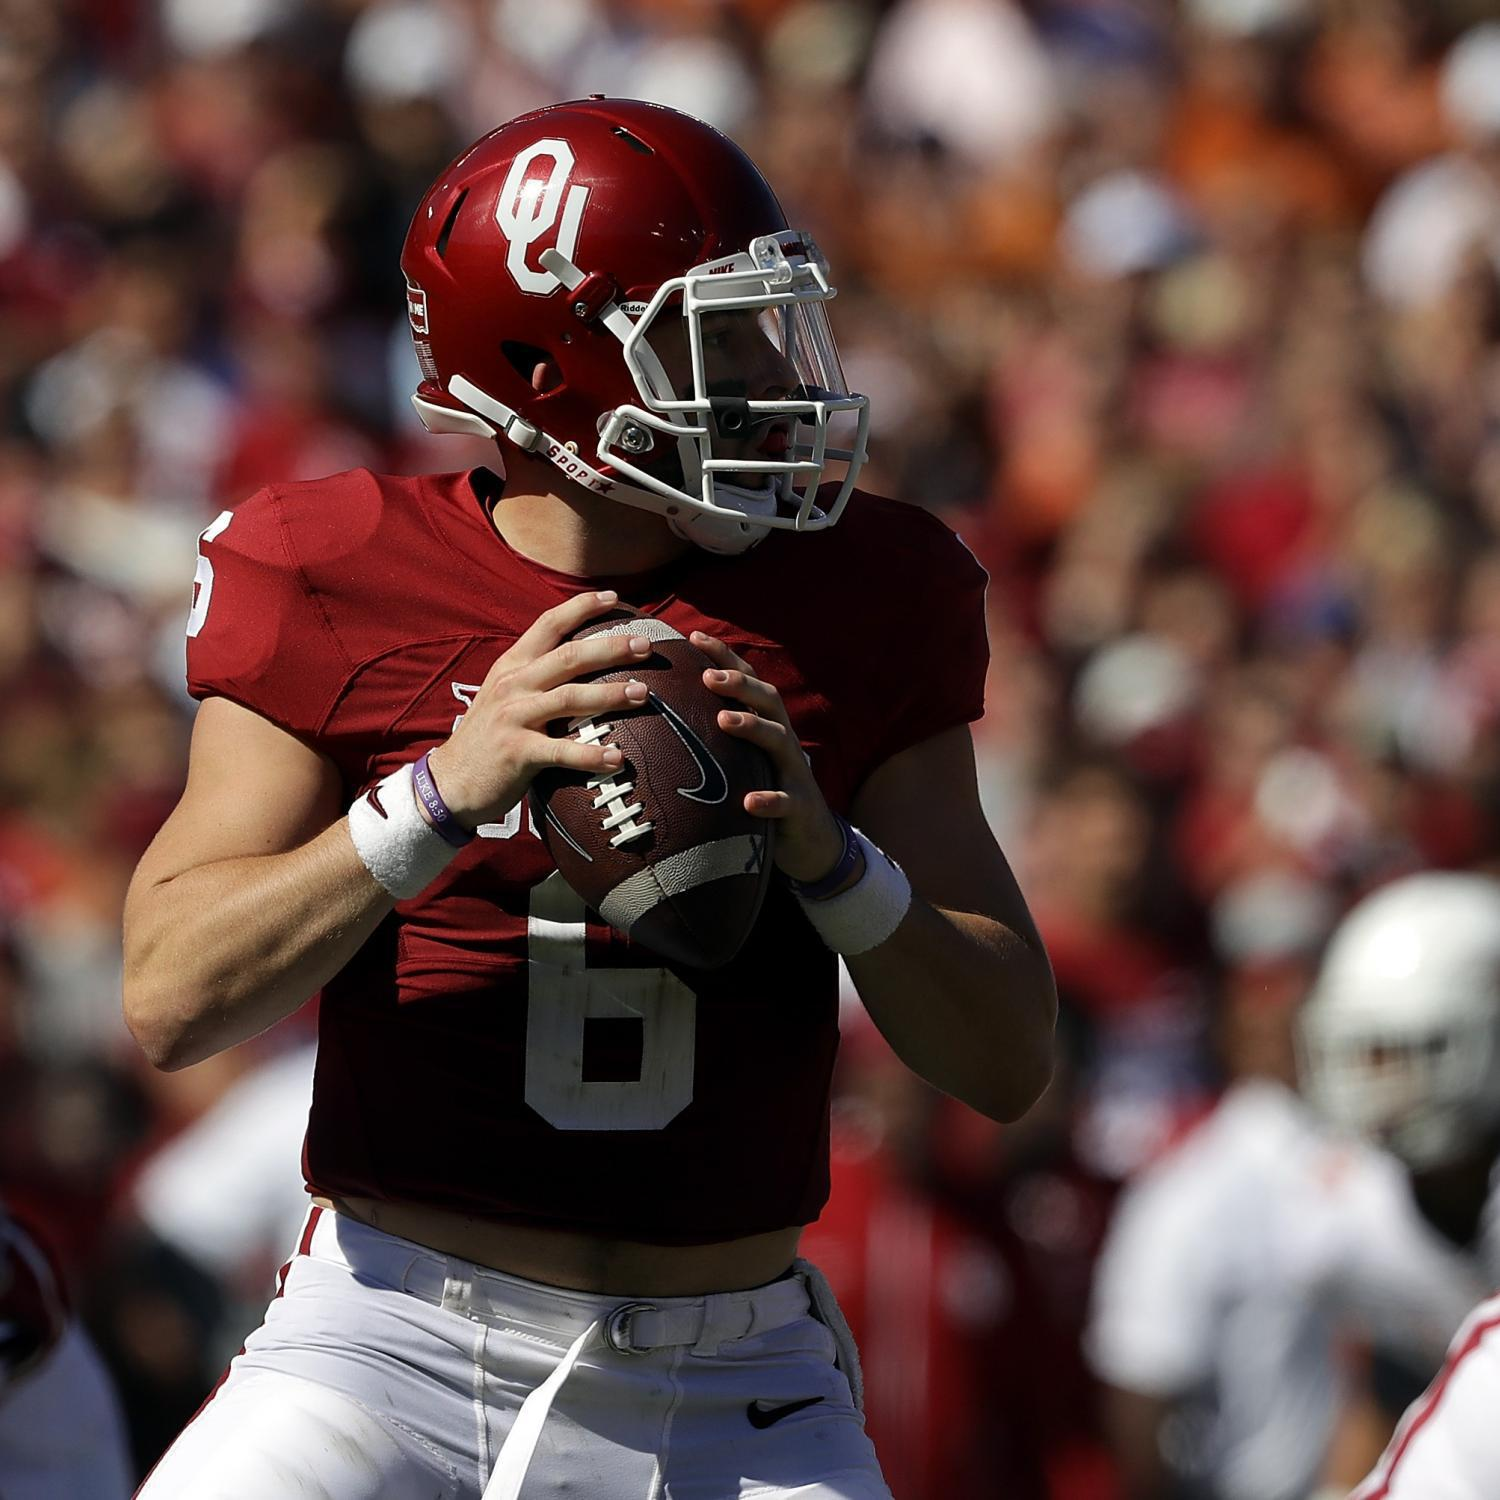 biggest college football player yahoo sports ncaaf scores